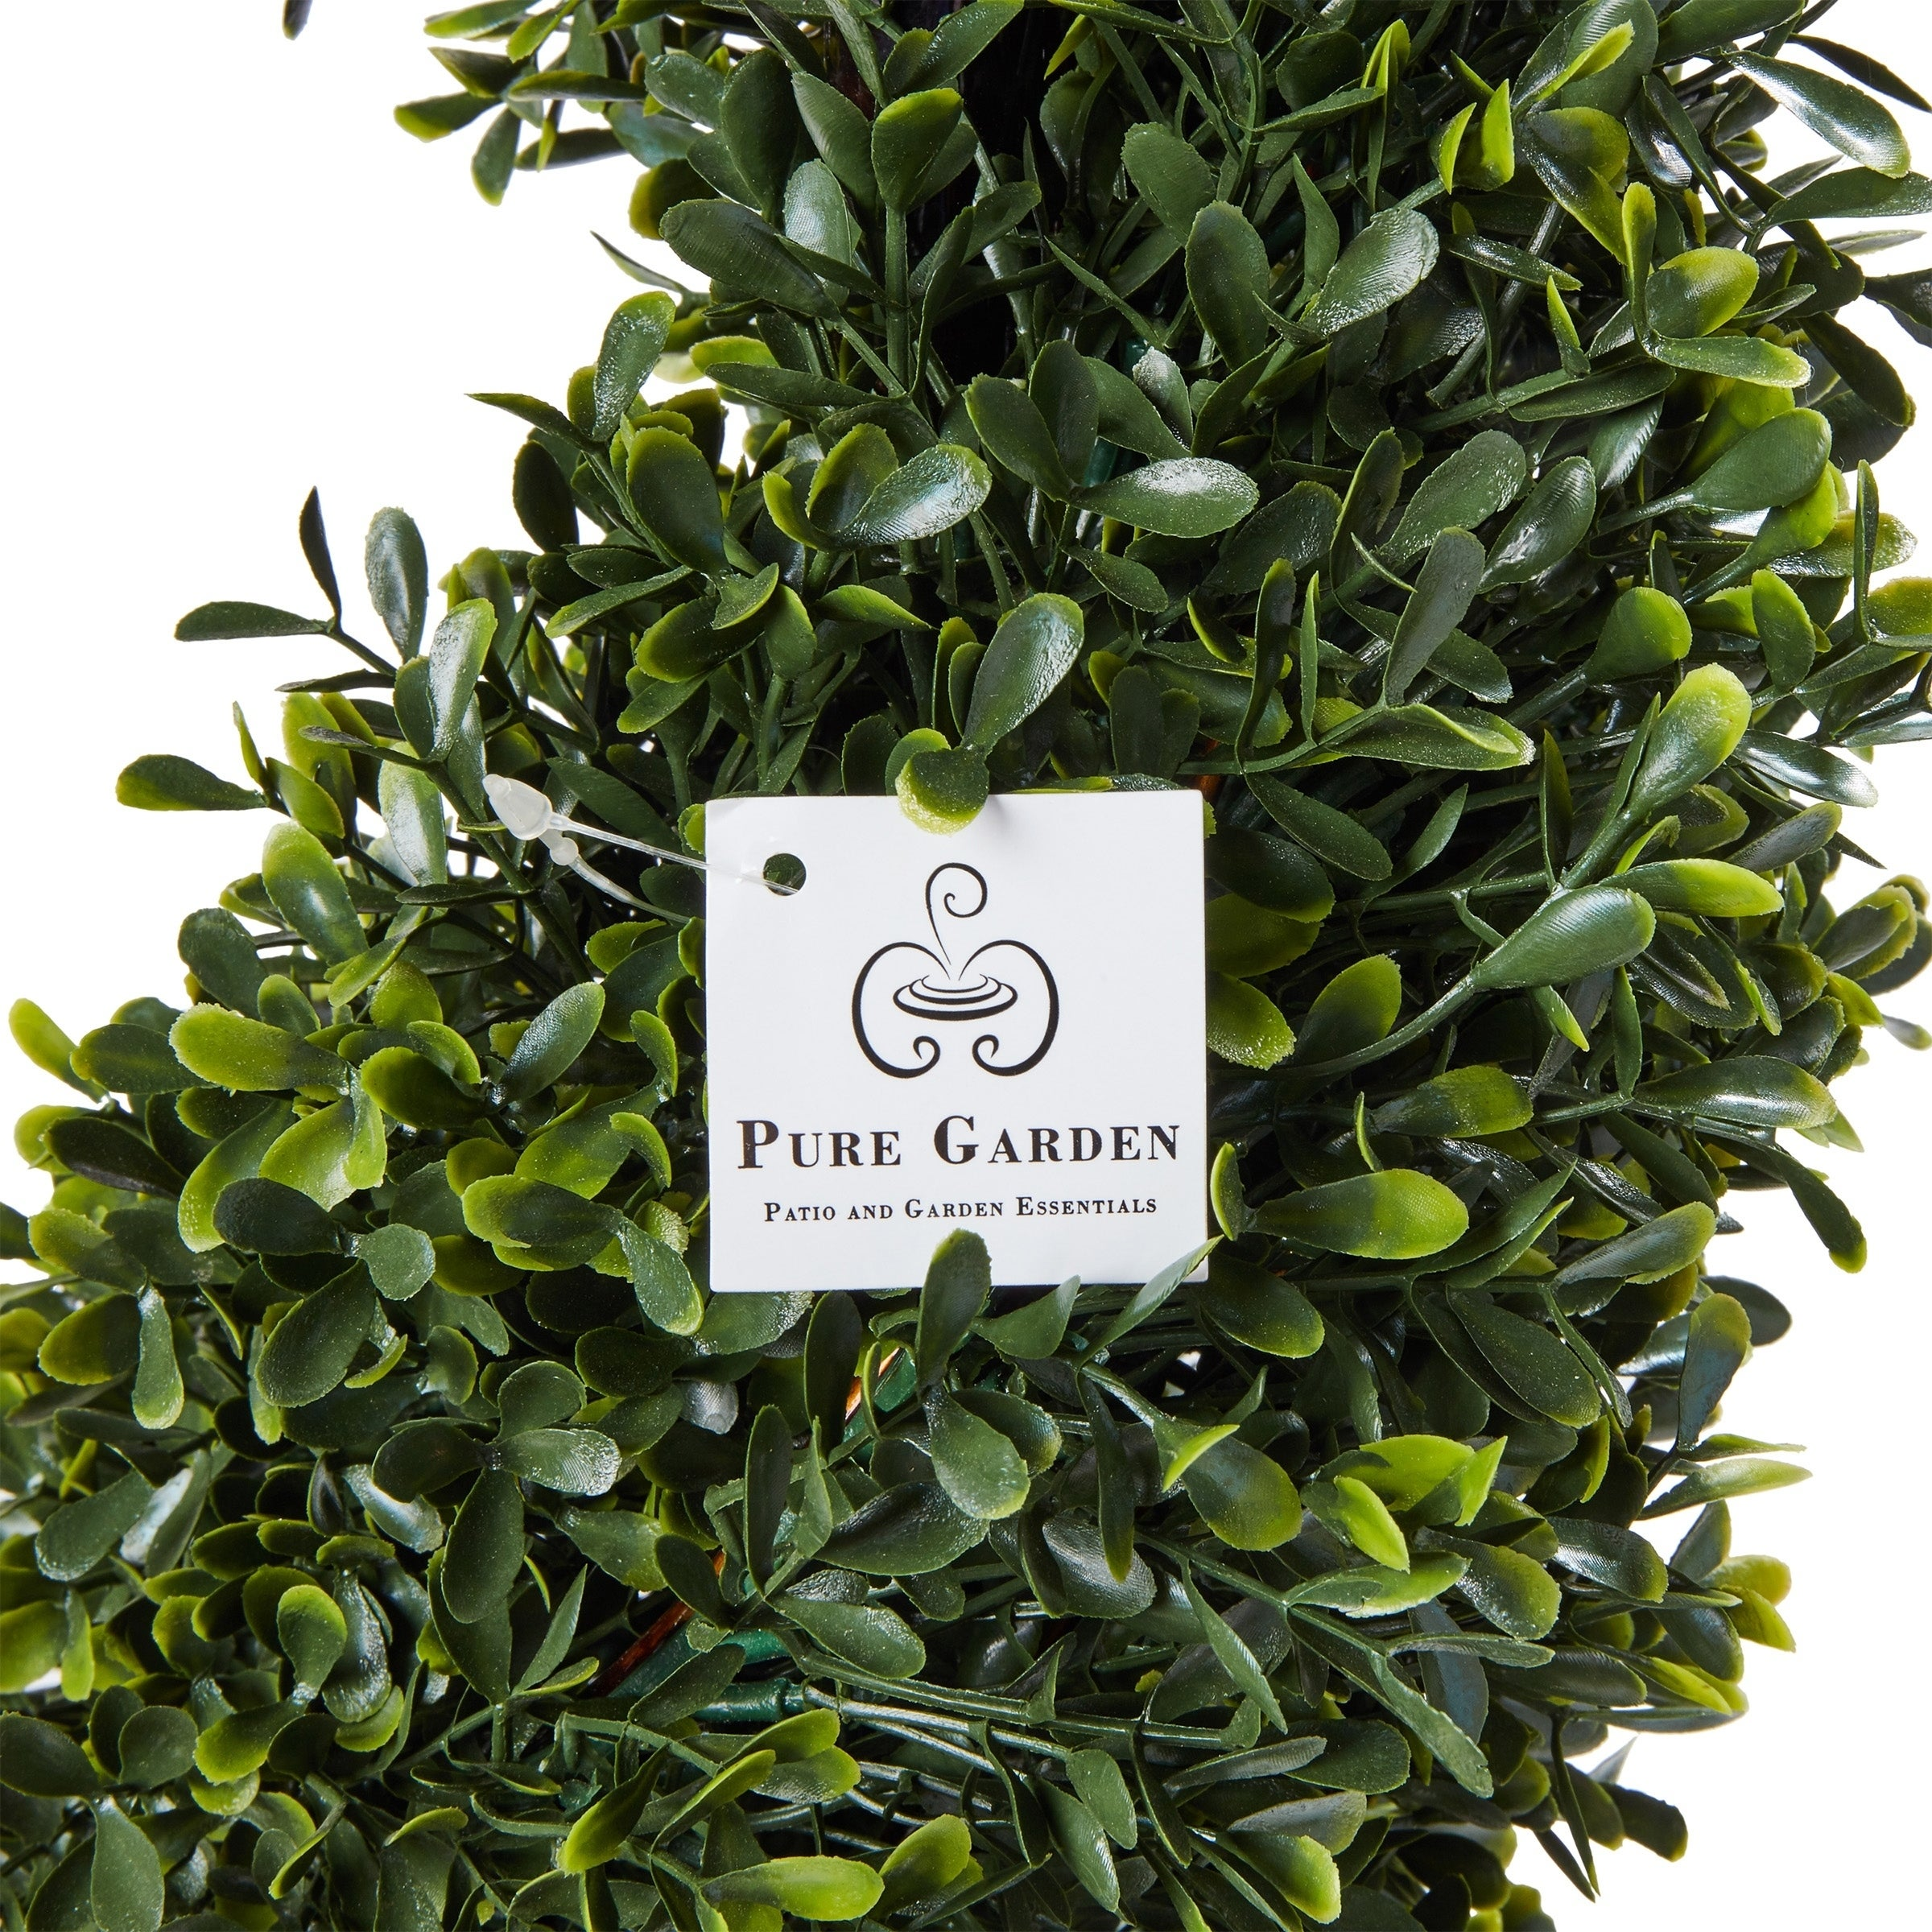 Pure Graden 5 Foot Faux Boxwood Spiral Topiary Arrangement In Weighted Pot Overstock 27741531